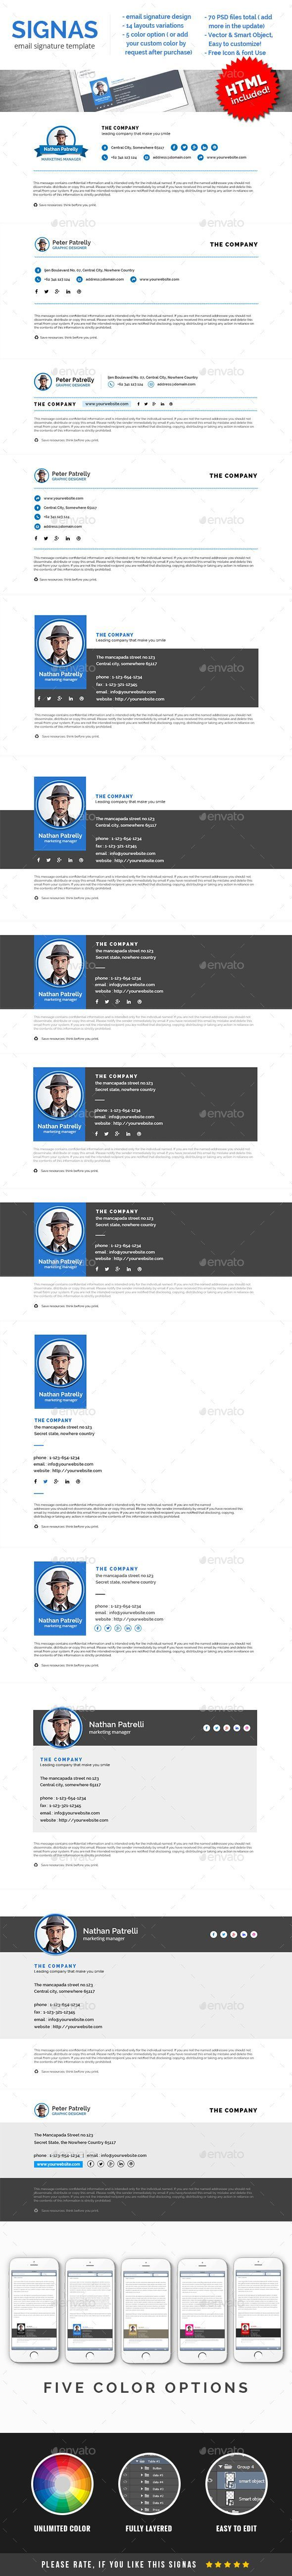 Signas Vol.02 - Email Signature Template by webElemento A sharp and professional email signature template for creative businesses, that will suit for your company or personal email sig